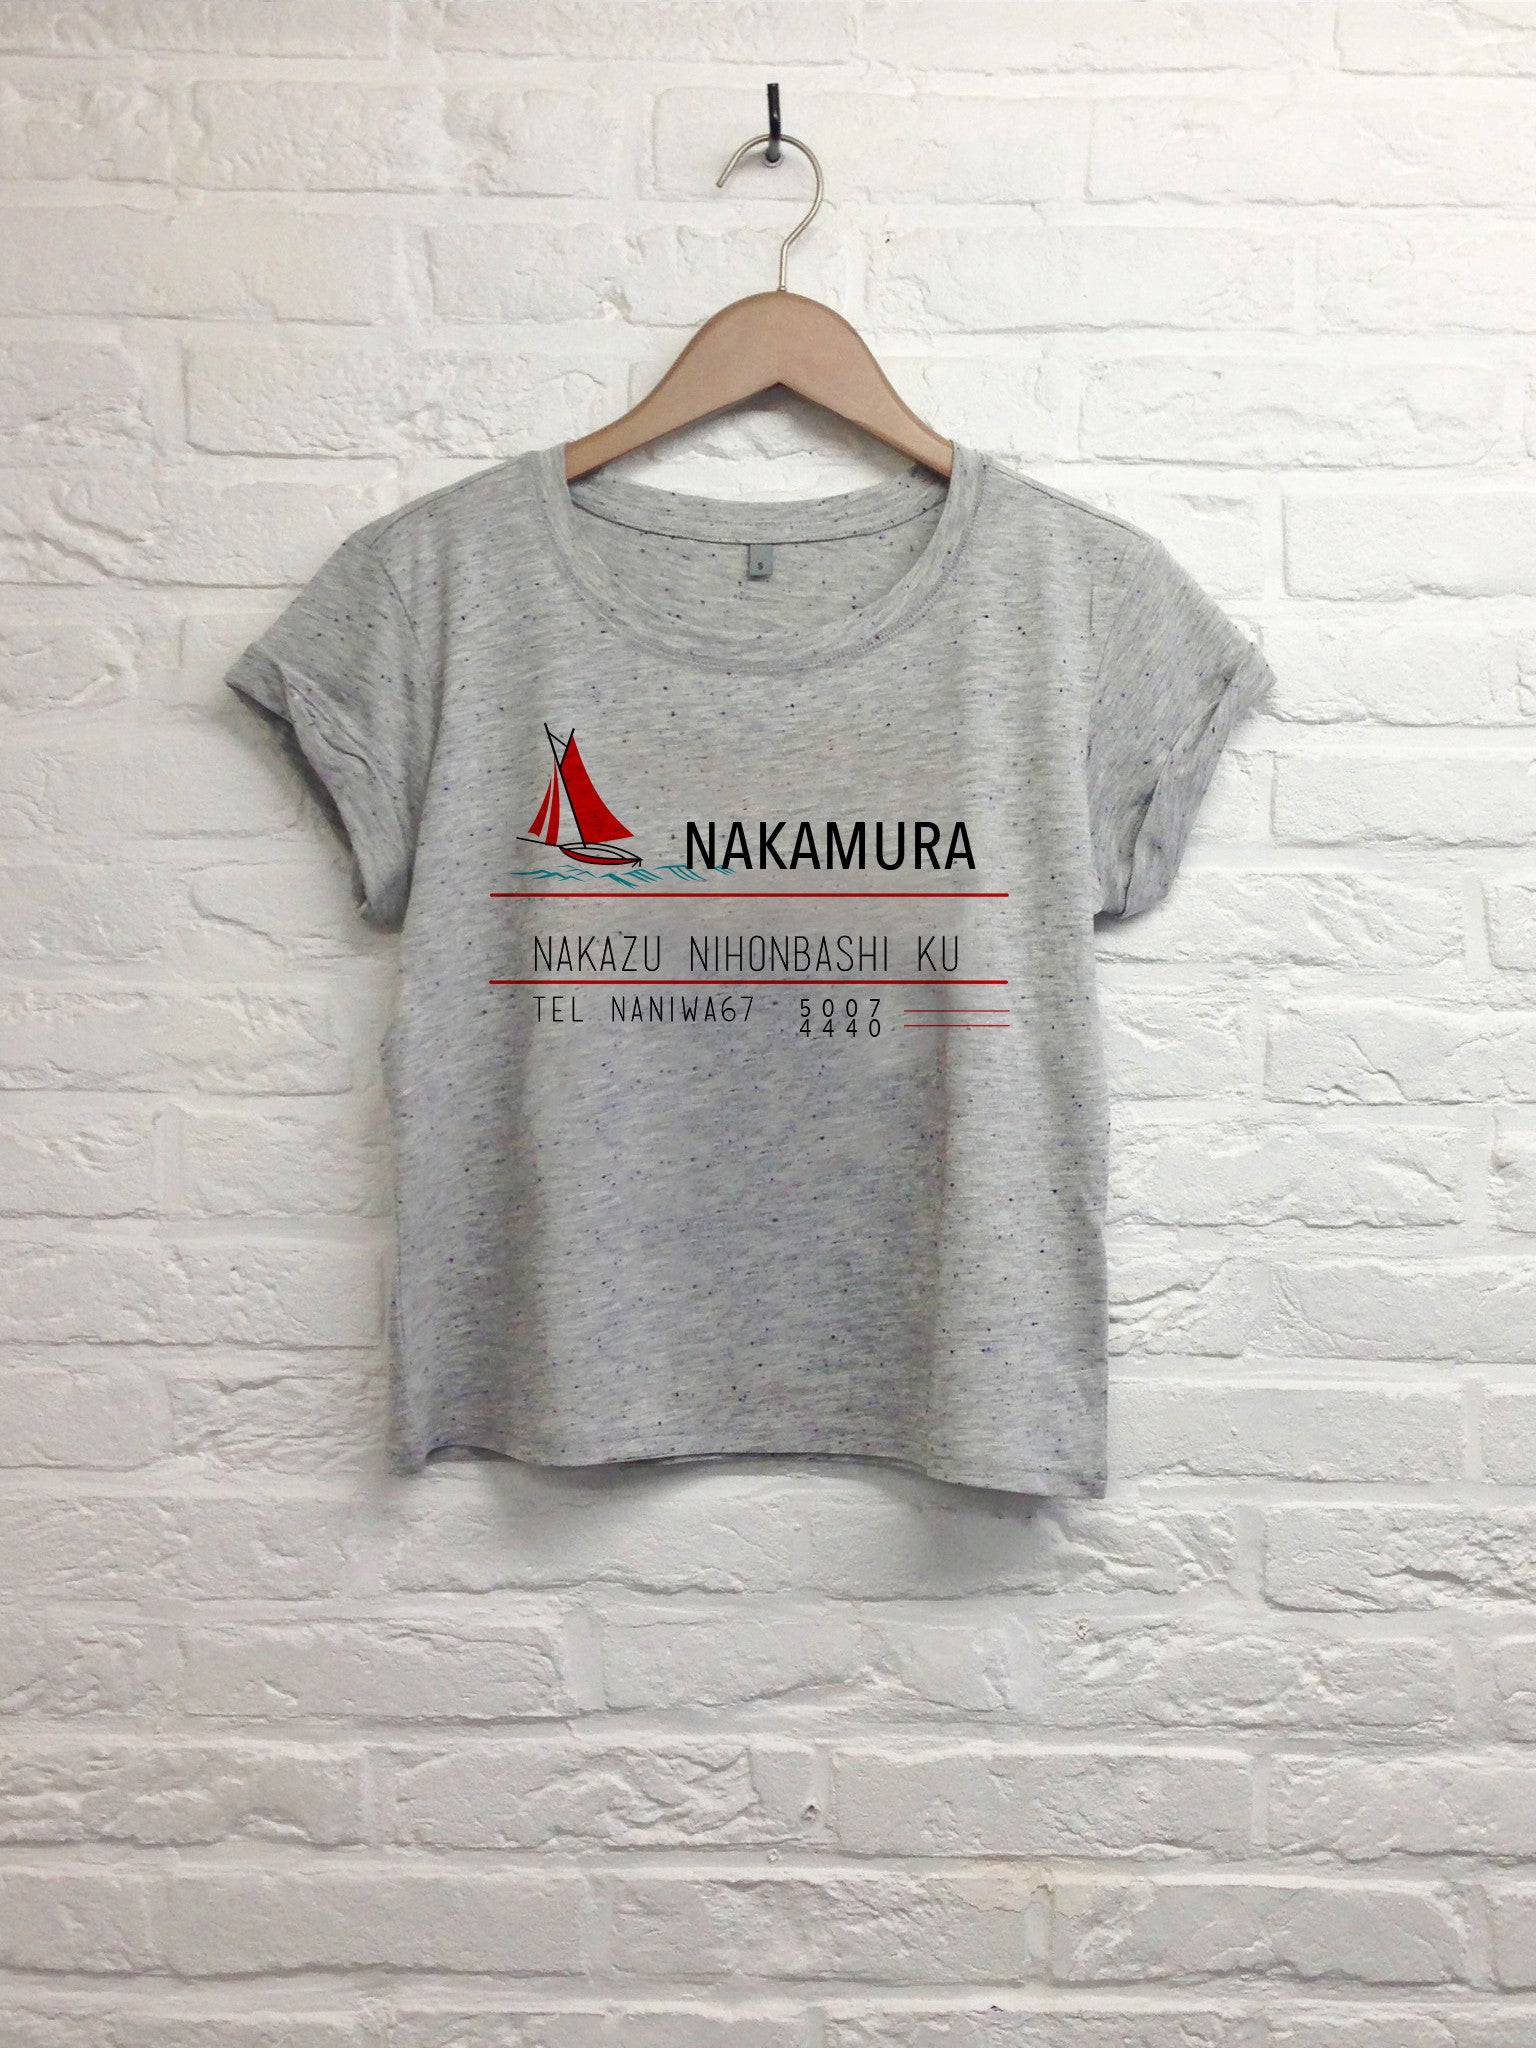 Nakamura - Crop top speckled grey